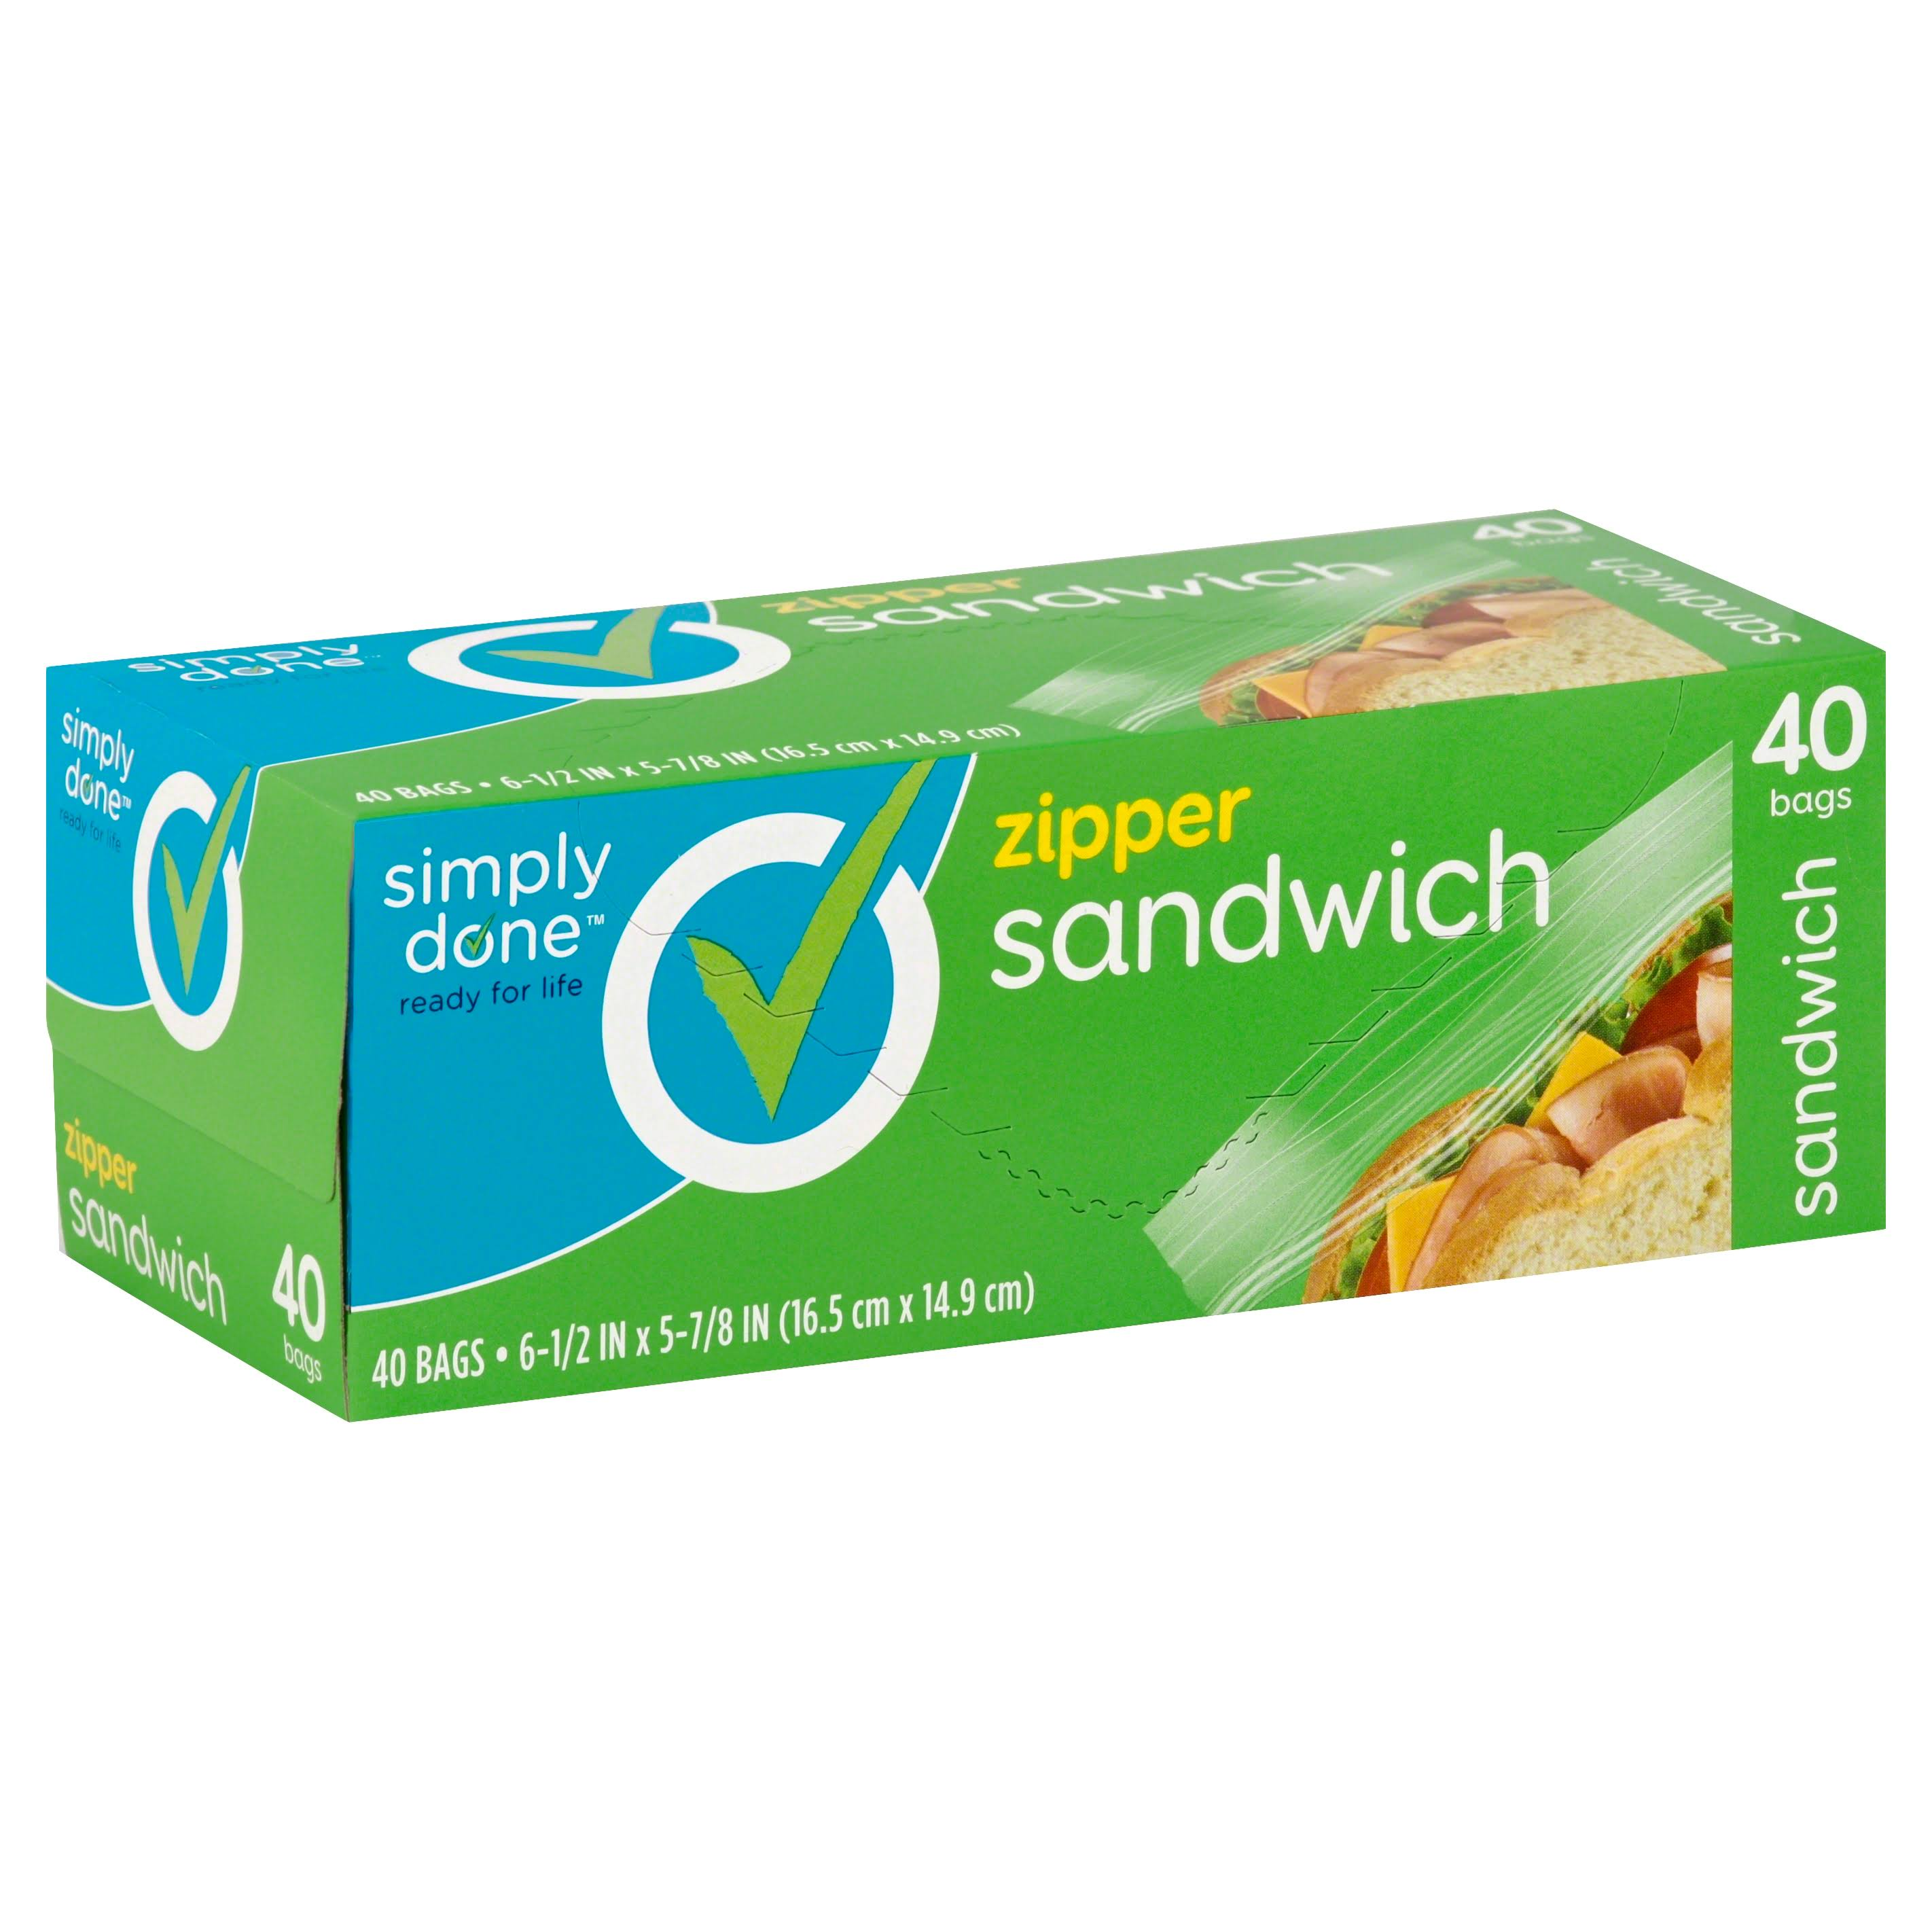 Simply Done Sandwich Bags, Zipper - 40 bags